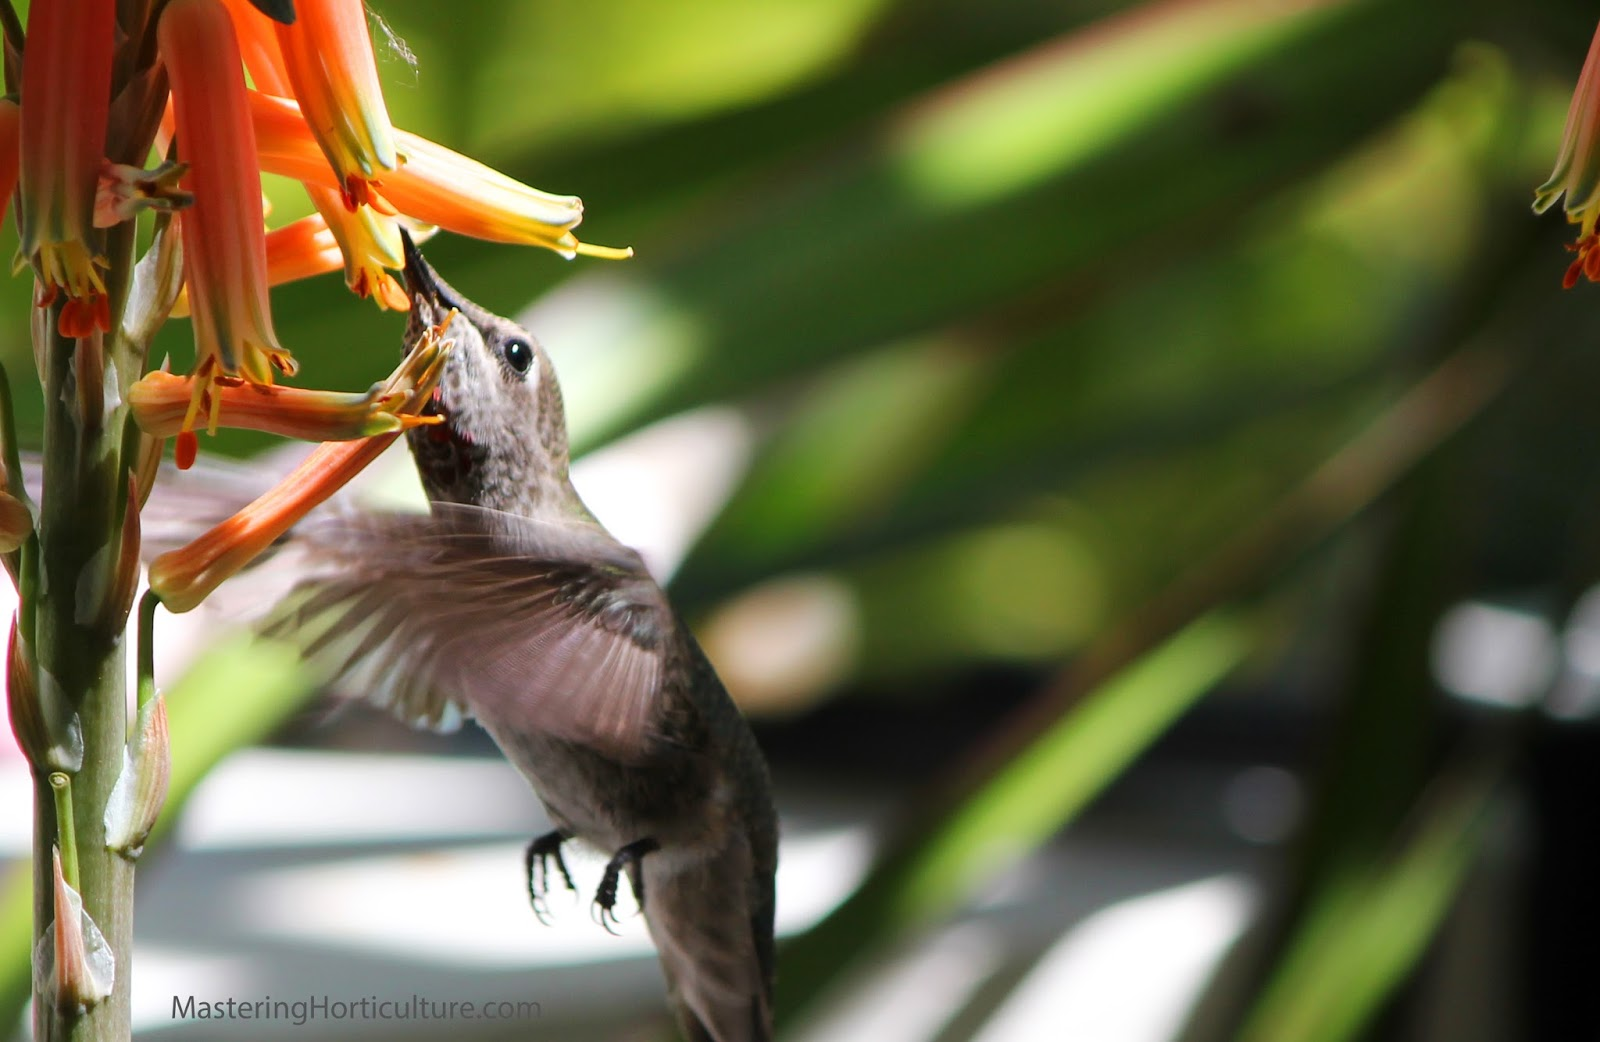 mastering horticulture  hummingbirds and succulent flowers